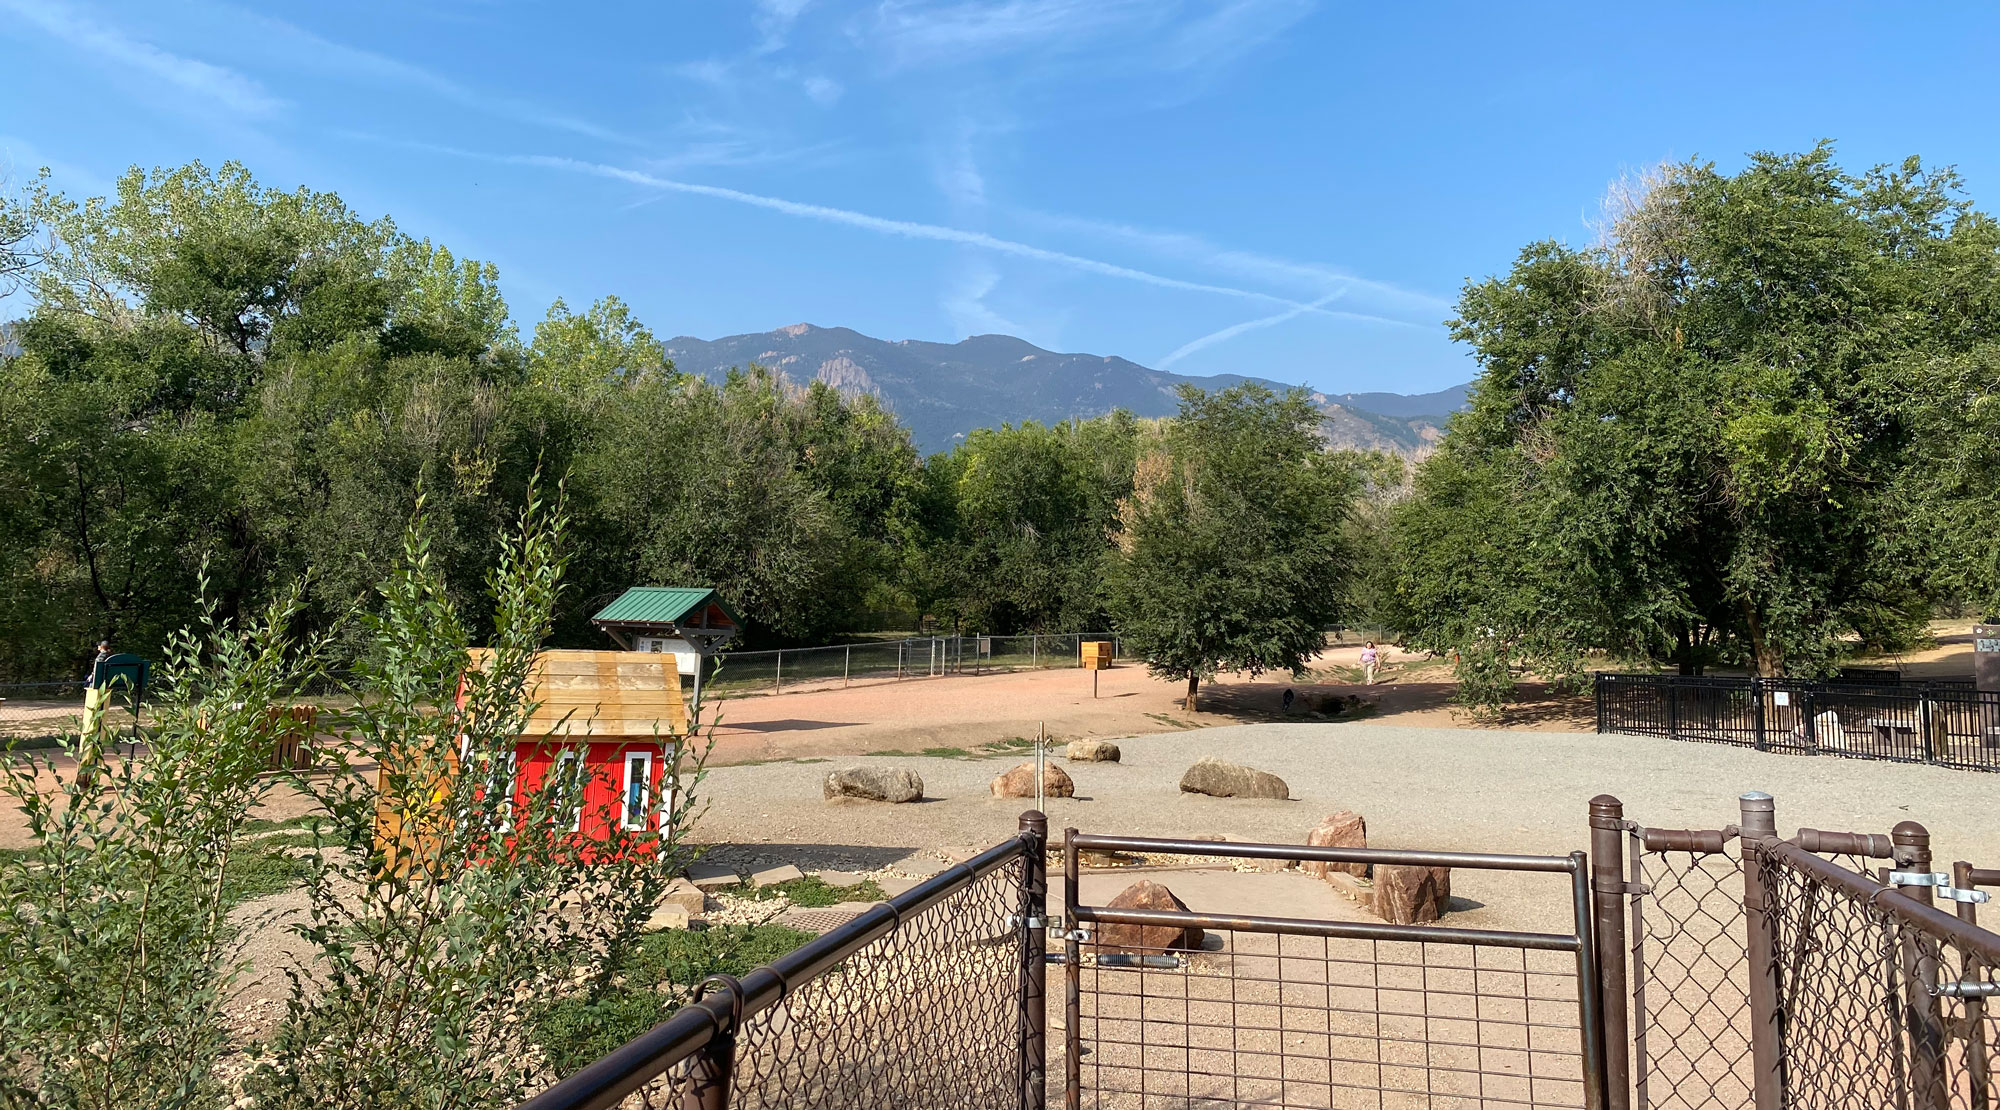 bear creek dog park, the largest of colorado springs dog parks